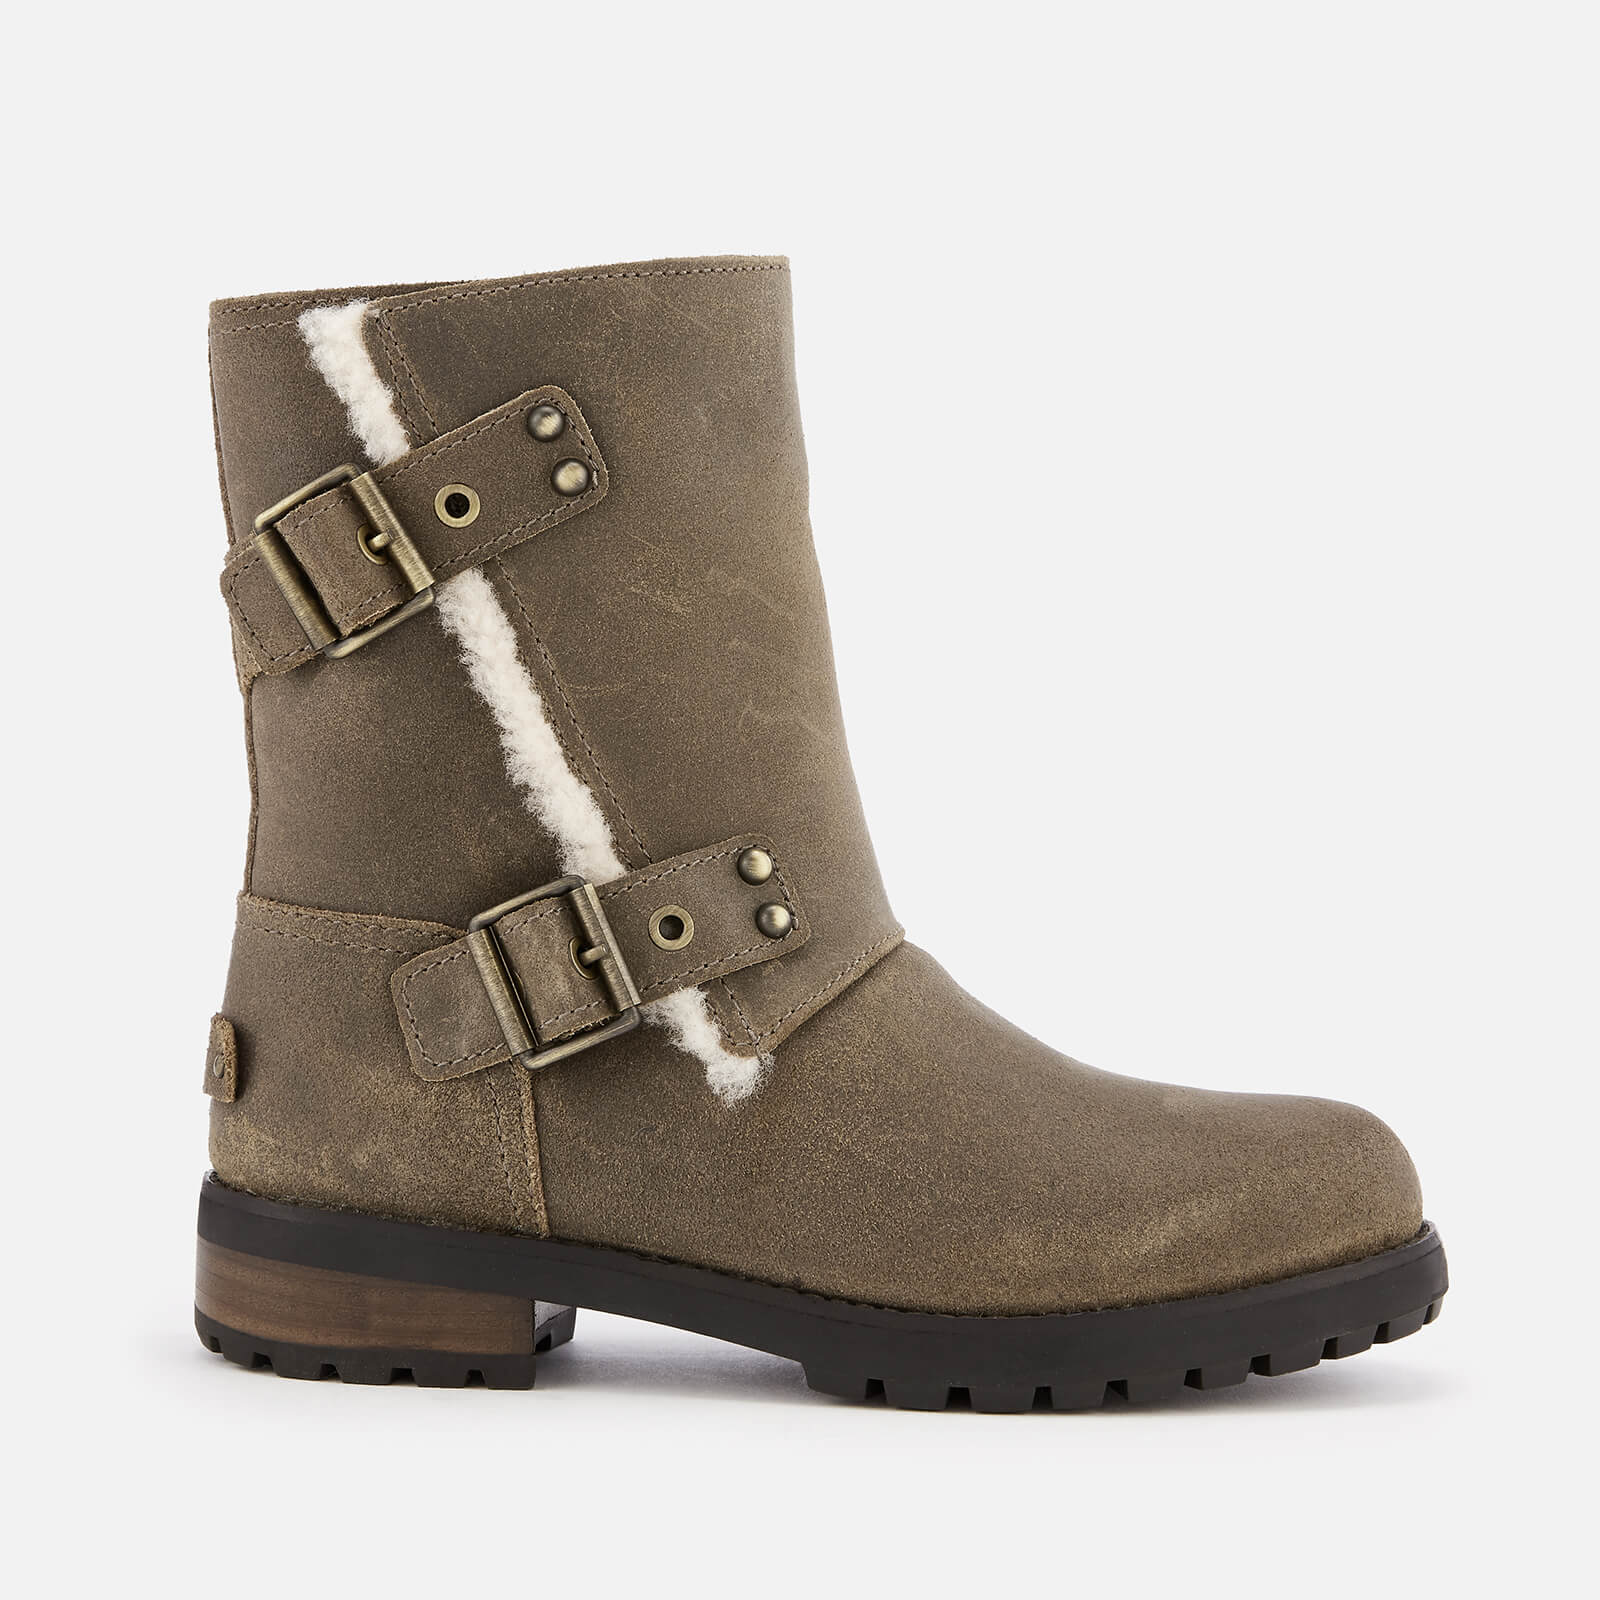 e71f2a5eb8a UGG Women's Niels II Water Resistant Leather Biker Boots - Dove